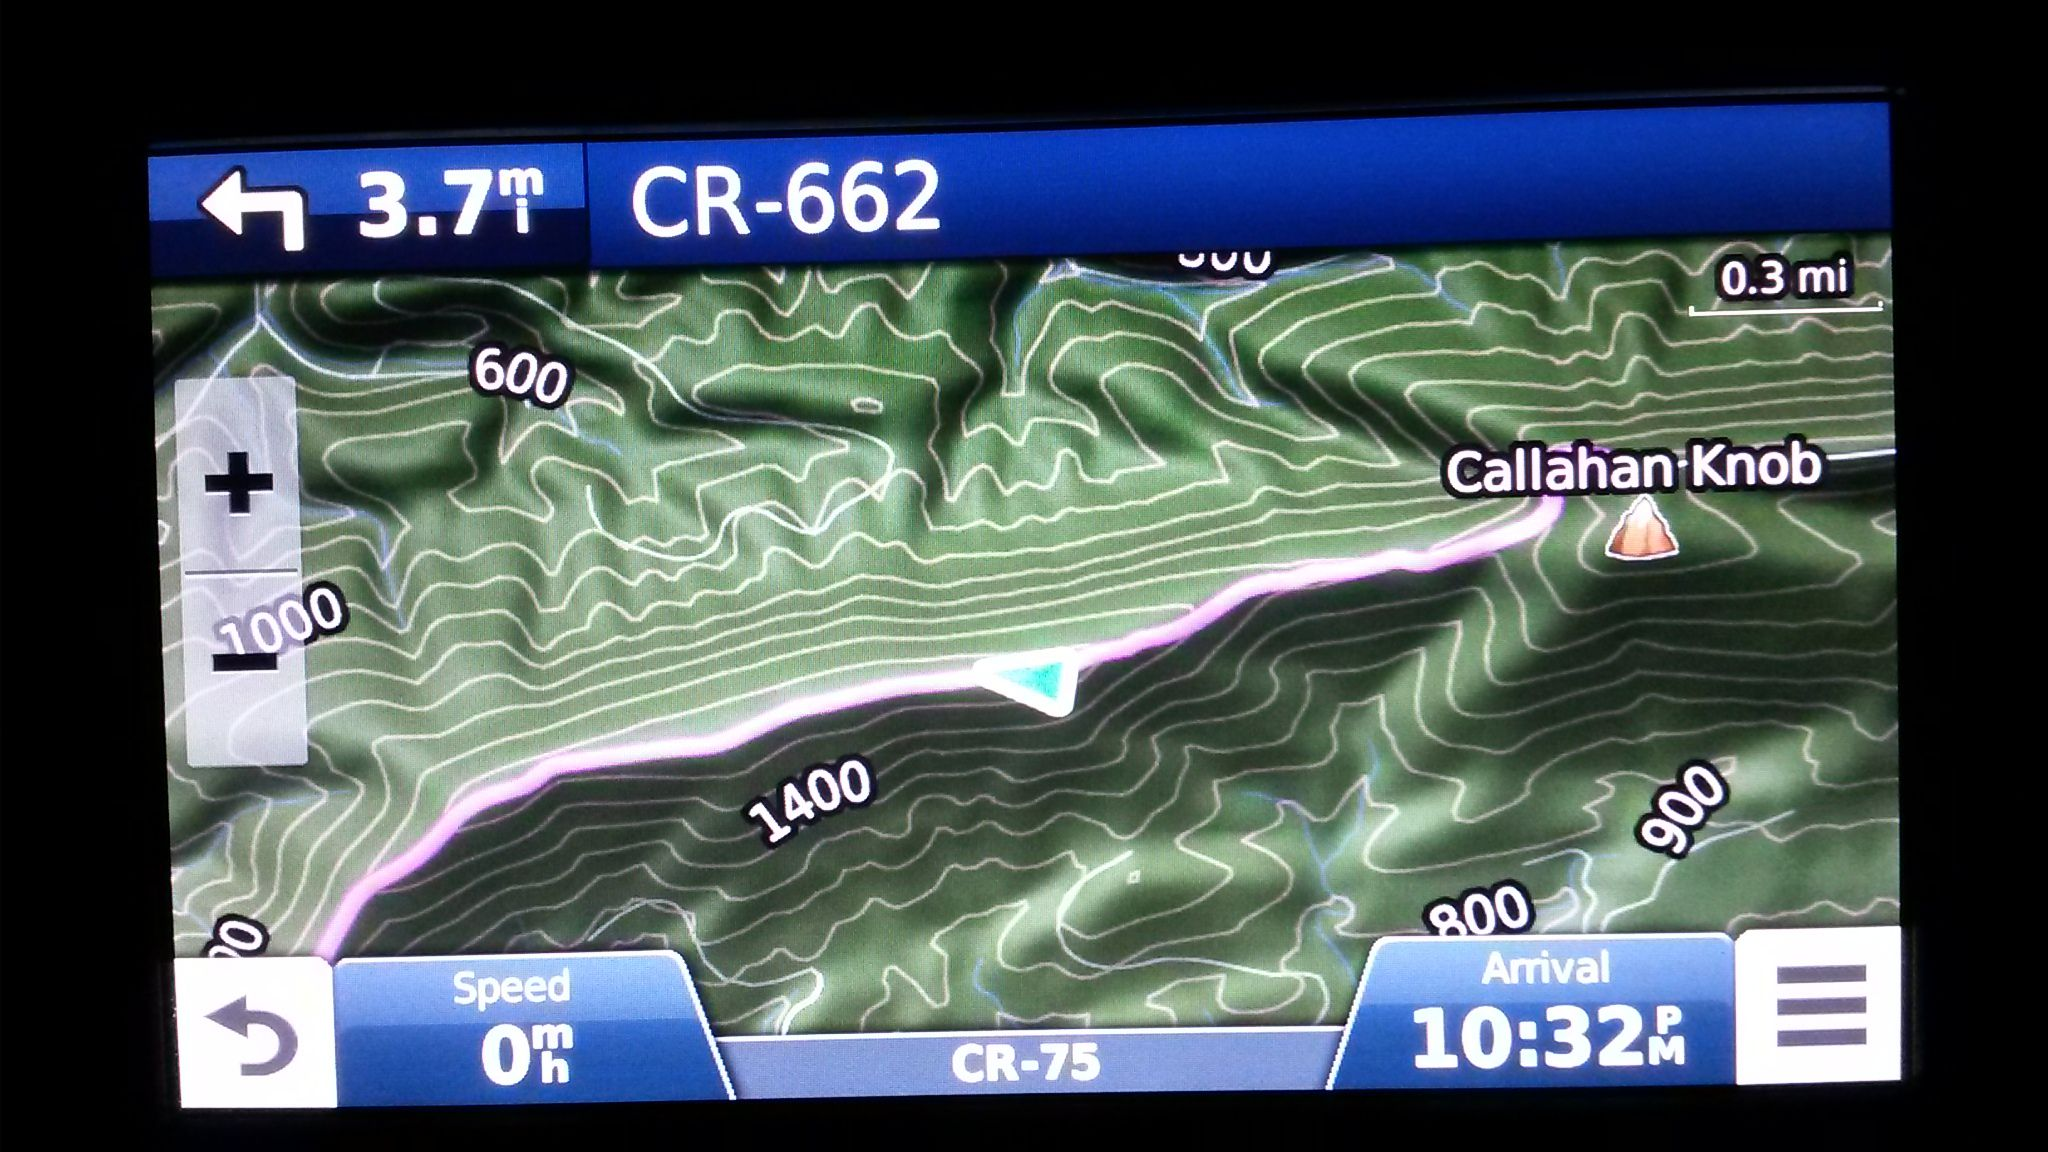 Garmin Topographic Map.Garmin 24k Topo Map Appearence Gallery Article